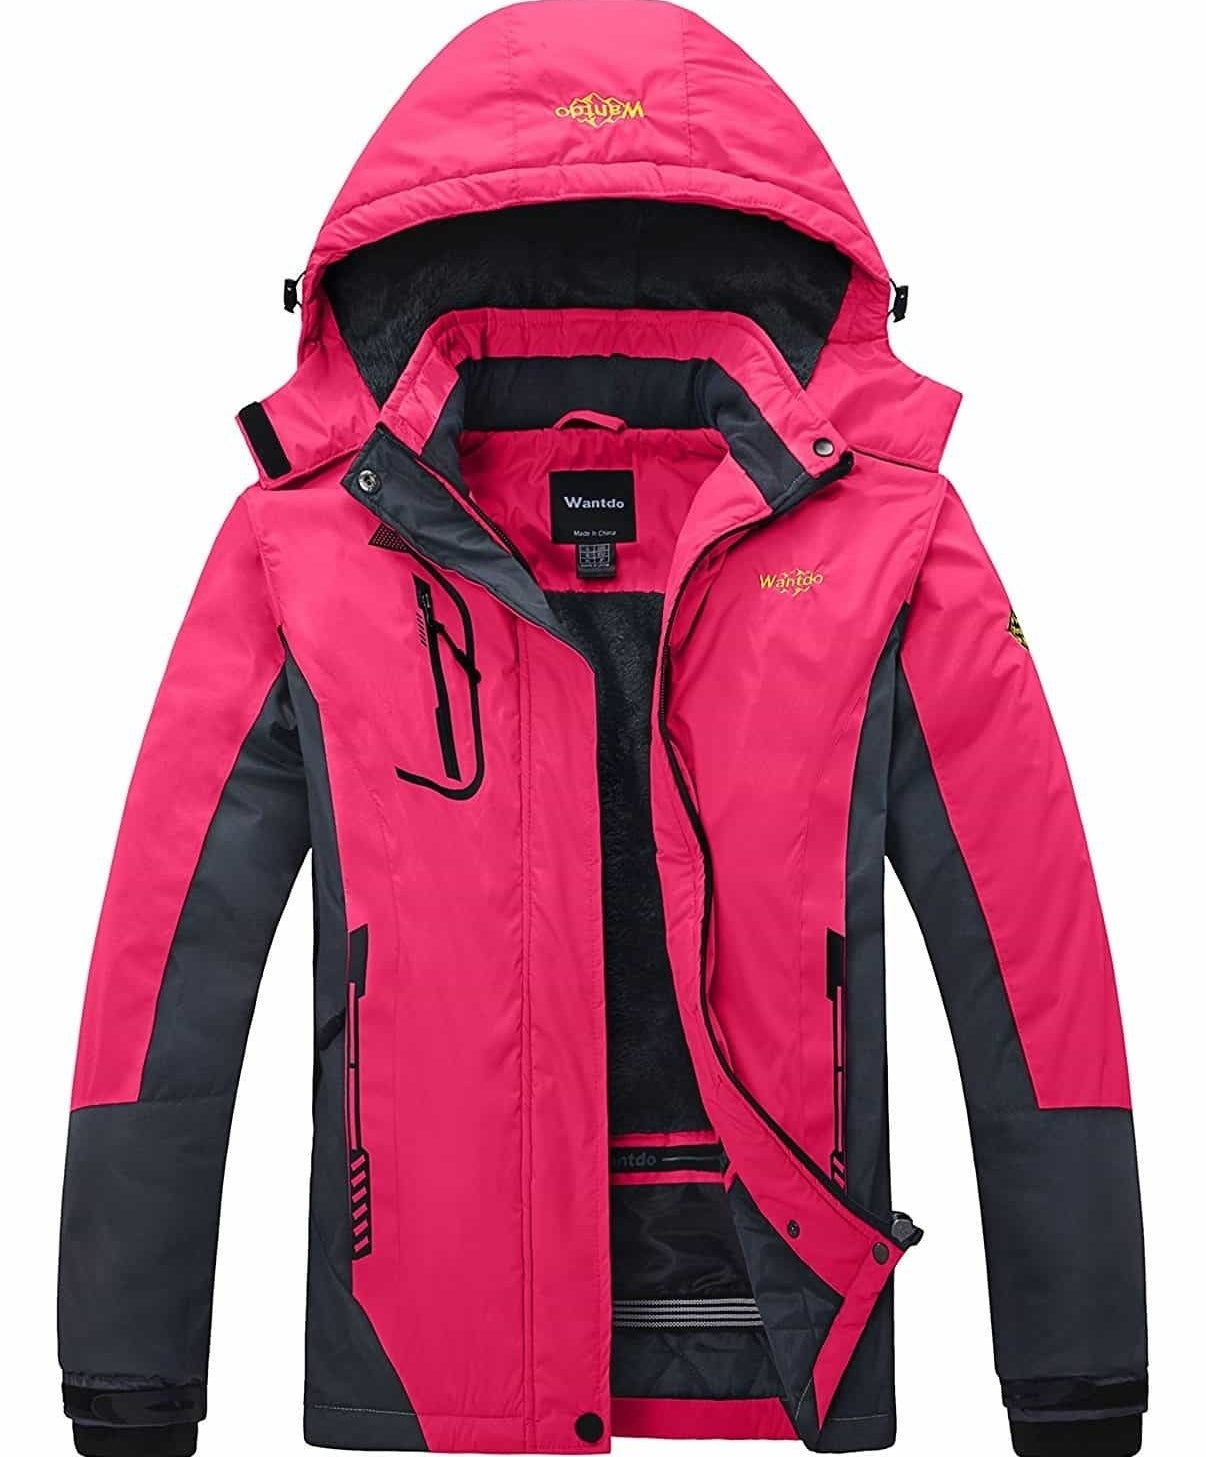 """Promising review: """"I never buy coats online, but couldn't resist when I saw this coat for such a great price, and needed a decent one for snowboarding. I ordered a size small. I am 5'3"""" and 120 lbs., and the coat fits like a dream! Excellent quality and is extremely warm. The color is perfect and vibrant. The inside is not fleece — more of a faux-fur, but very warm and actually softer than expected. Will probably buy another in a different color!"""" —KellyPrice: $78.89 (available in six colors, and sizes S–2XL)"""